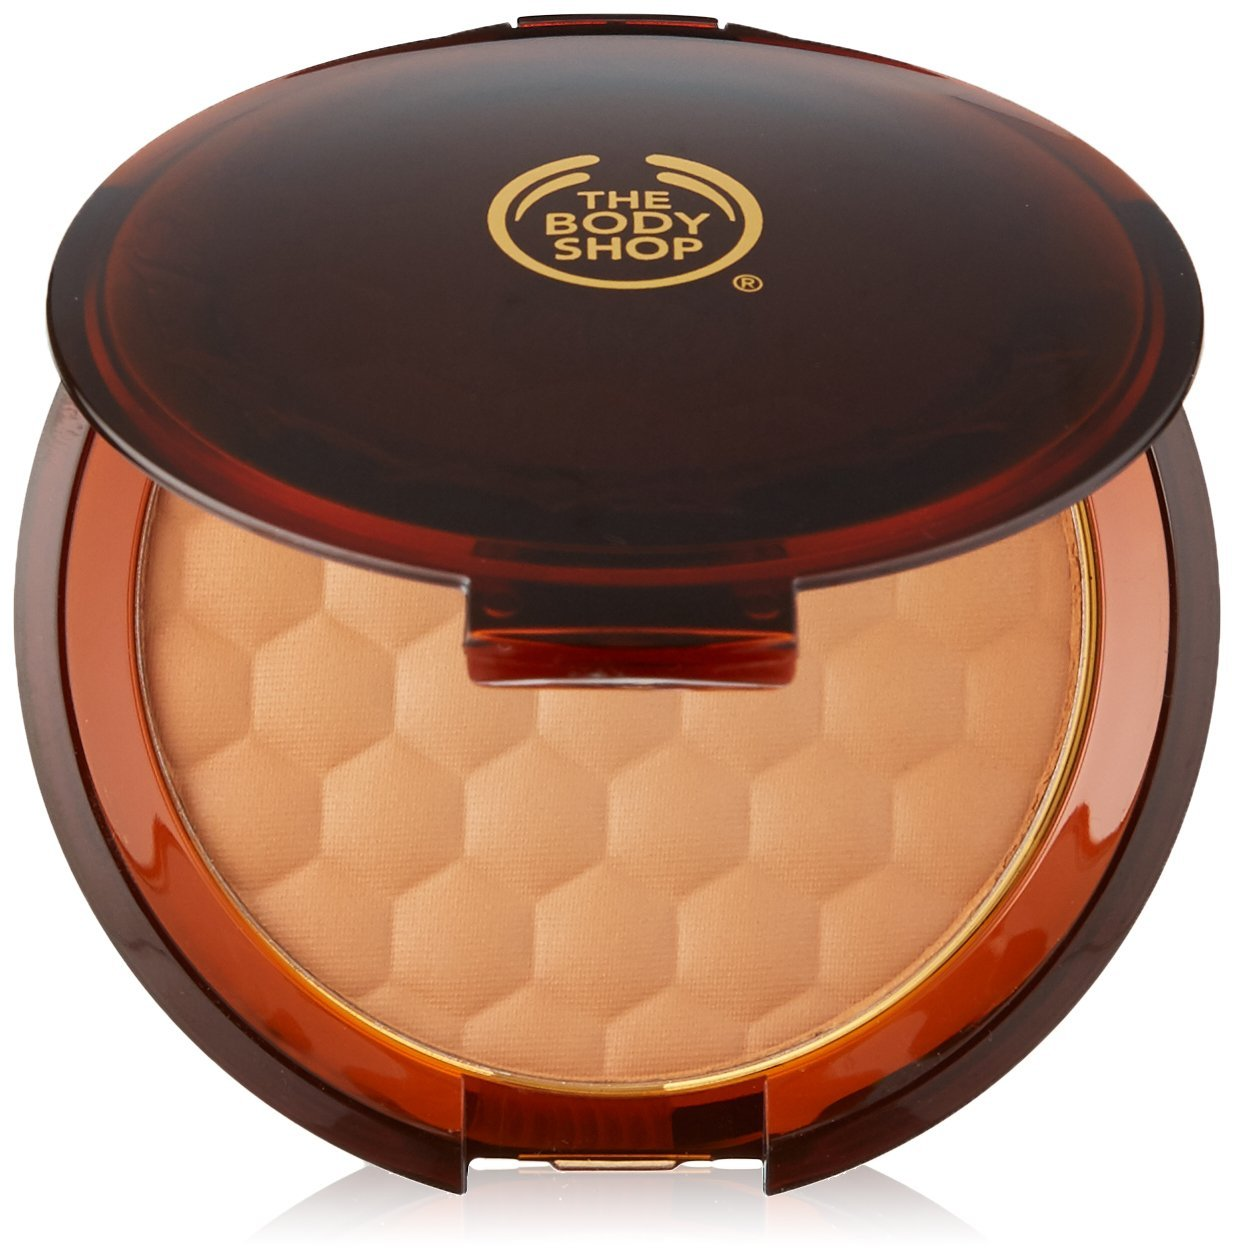 The Body Shop Honey Bronzing Powder, Deep Matte, 2.08 Ounce